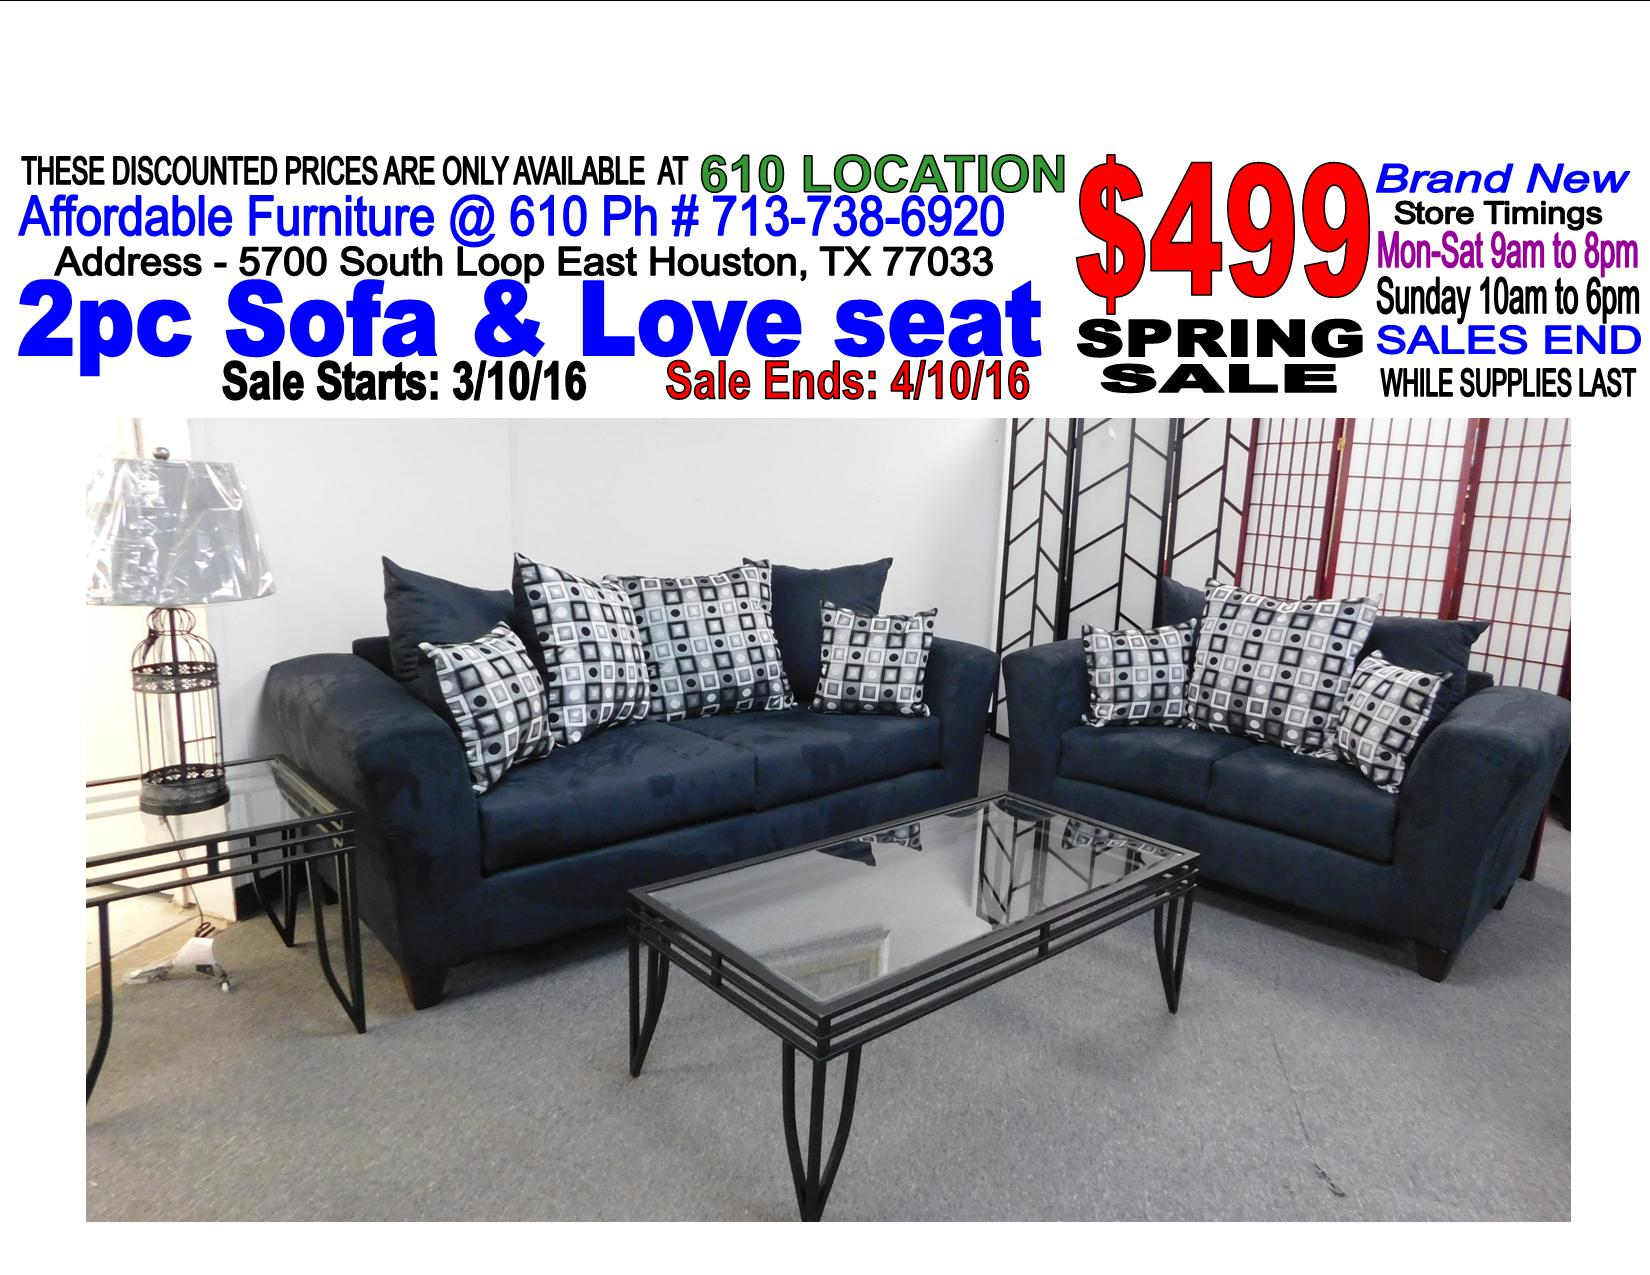 Affordable furniture 5700 south loop e ste a houston tx for Affordable furniture 5700 south loop east